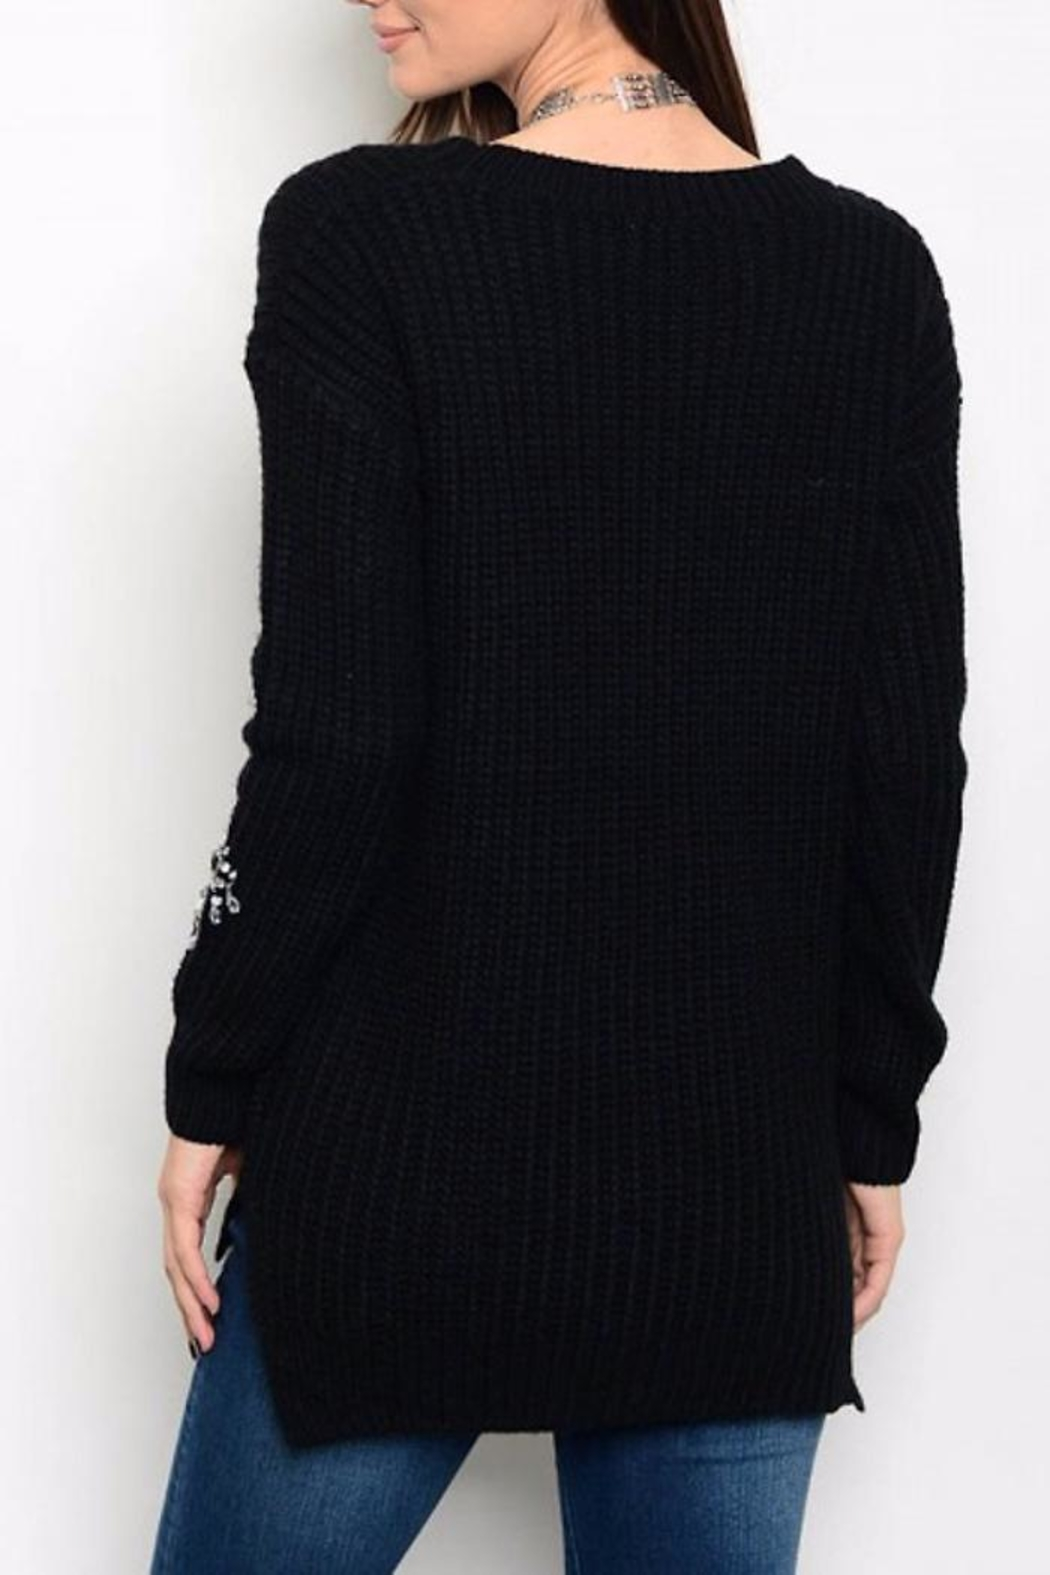 People Outfitter Rhinestone Sweater - Front Full Image